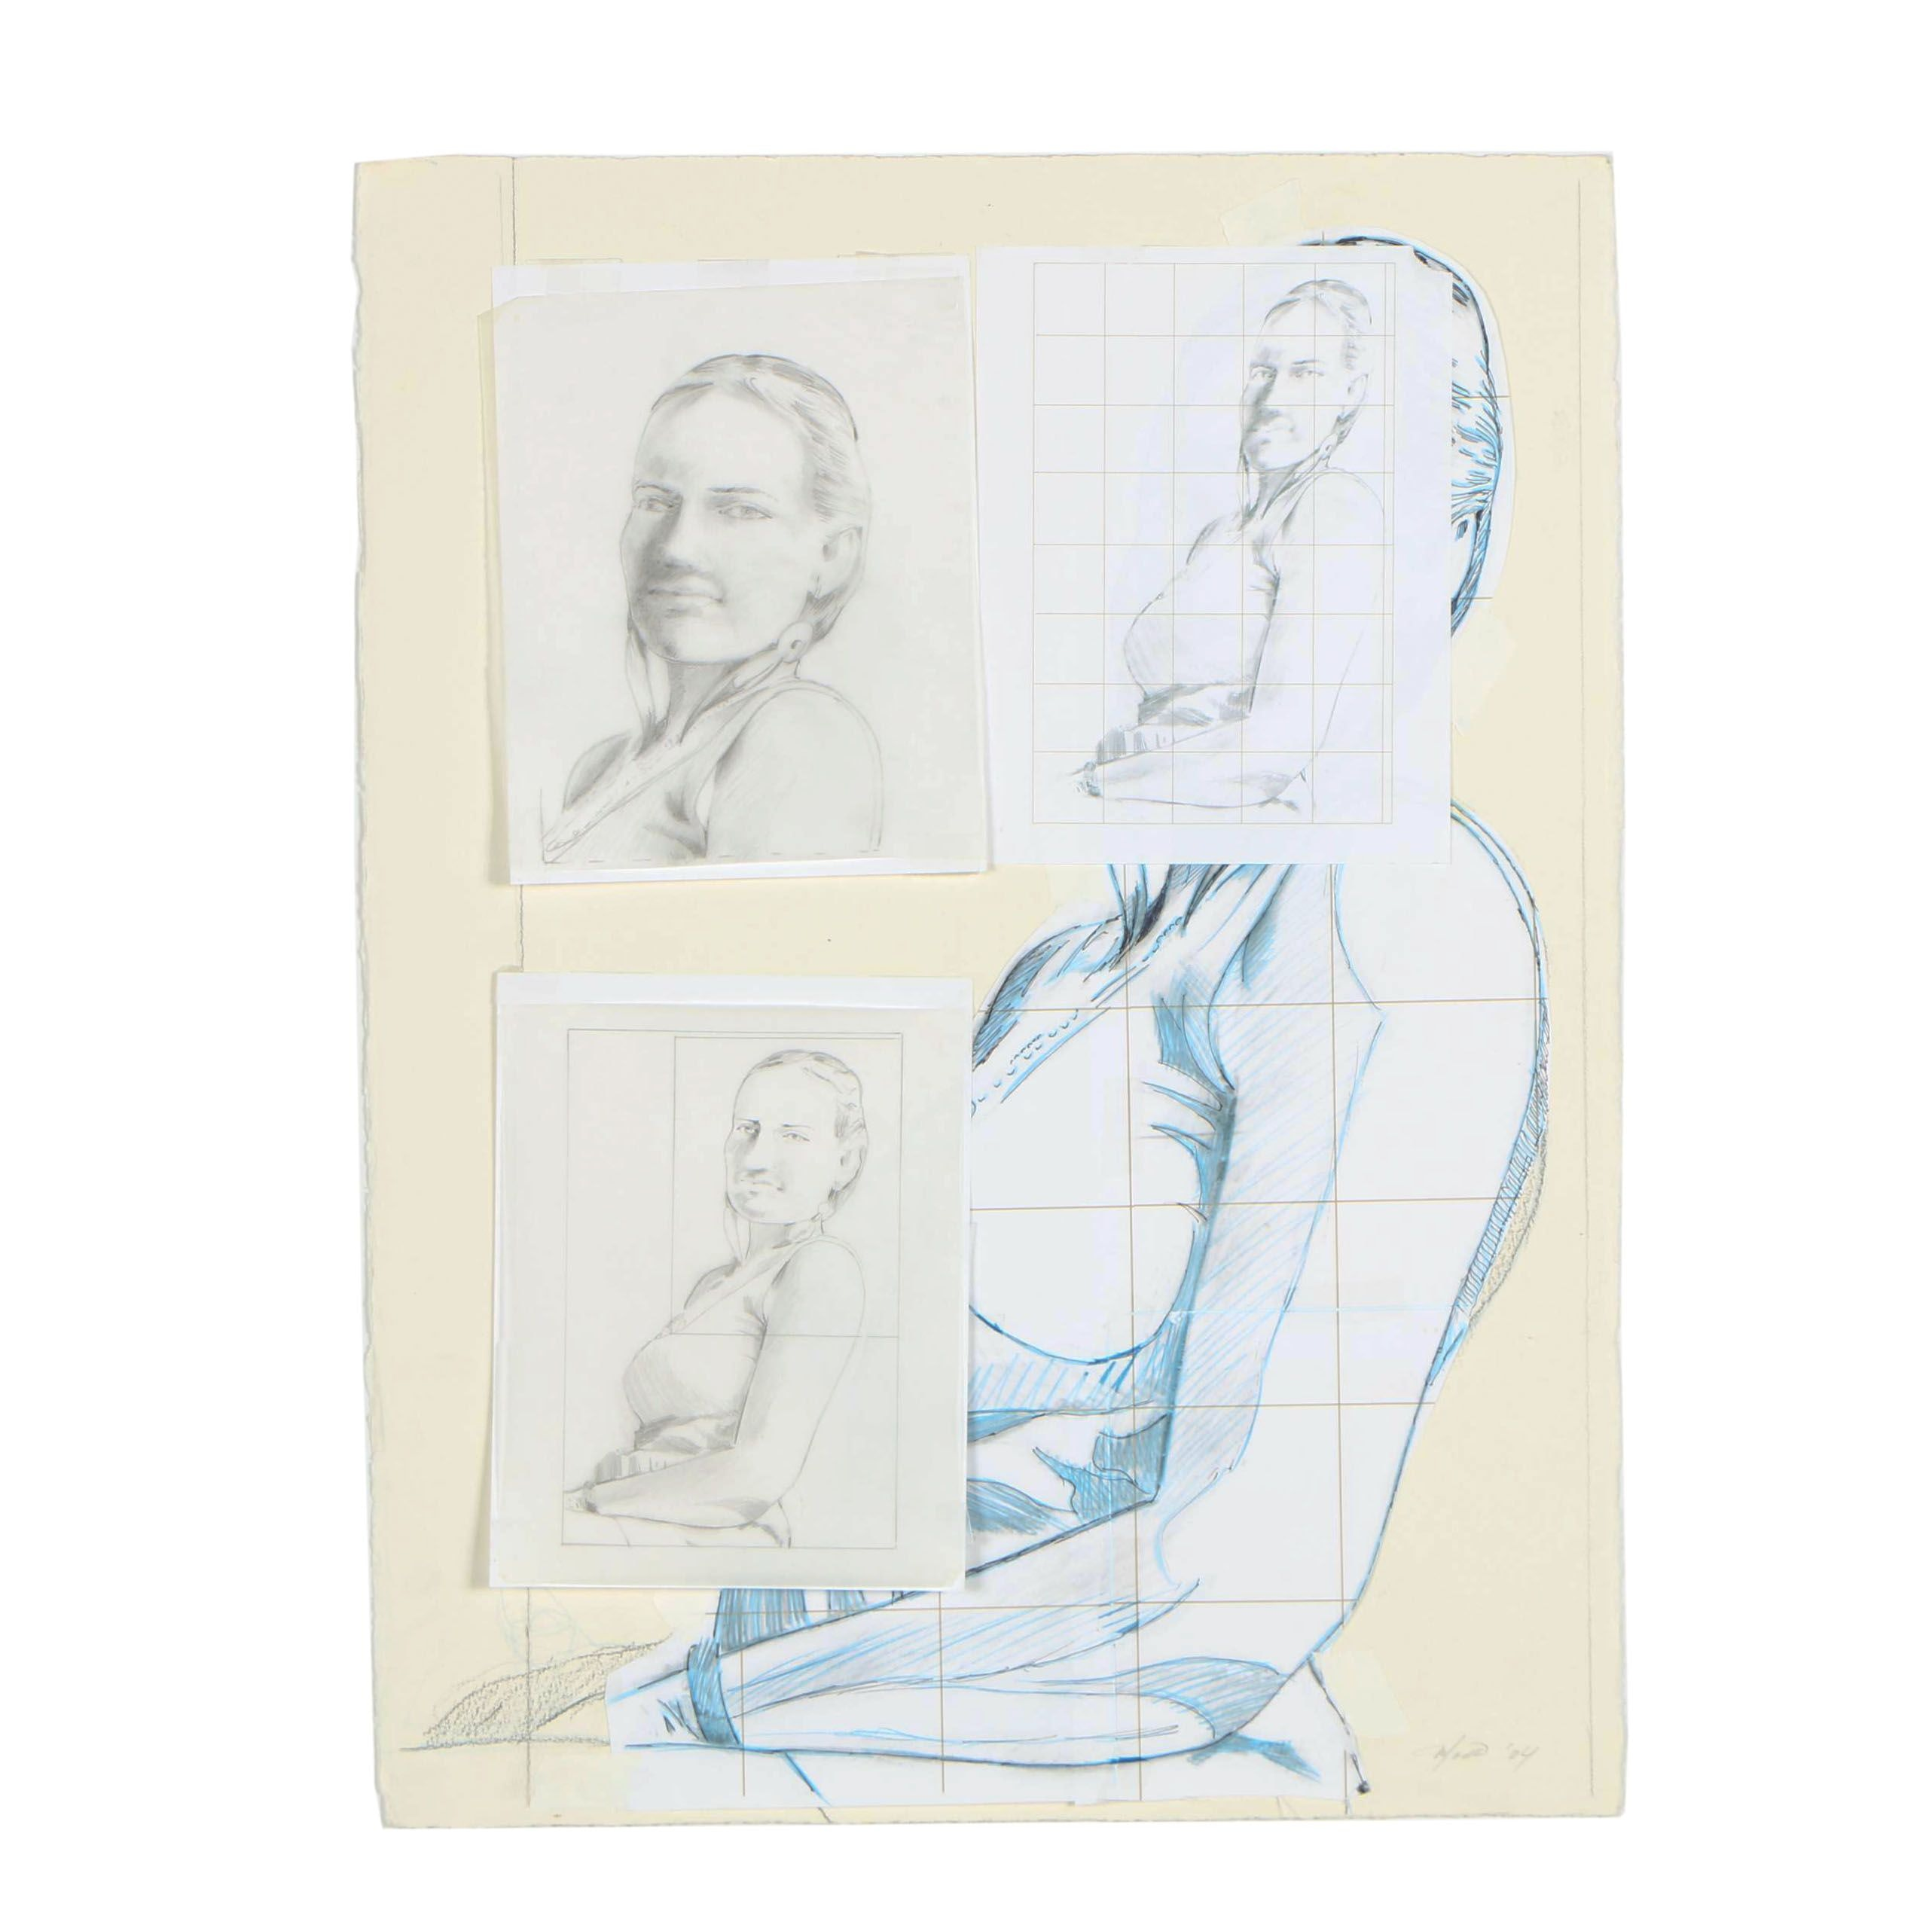 Ricardo Morin 2004 Mixed Media Drawings